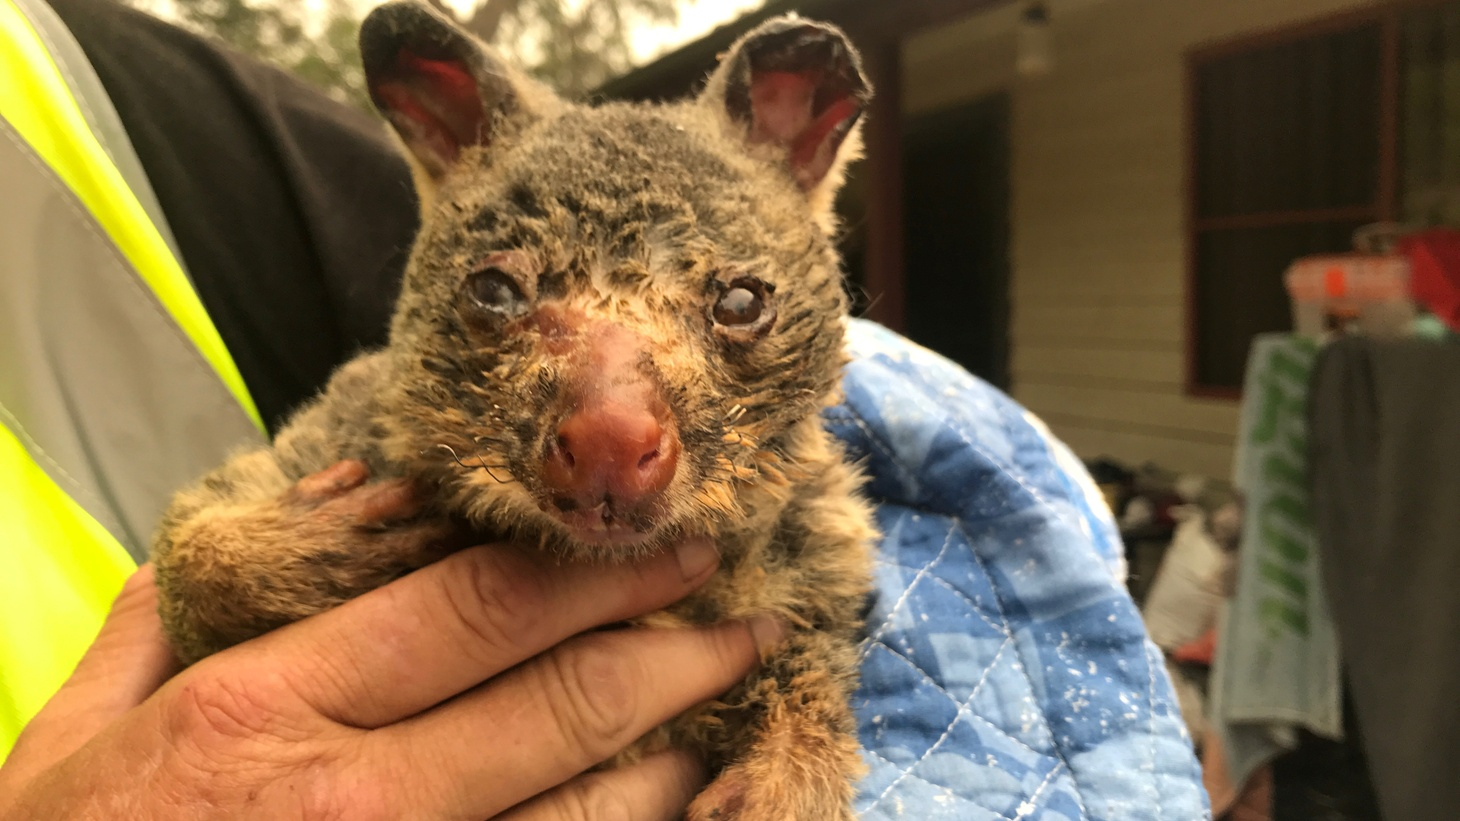 Wildlife Information, Rescue and Education Services (WIRES) volunteer and carer Tracy Burgess holds a severely burnt brushtail possum rescued from fires near Australia's Blue Mountains, December 29, 2019.